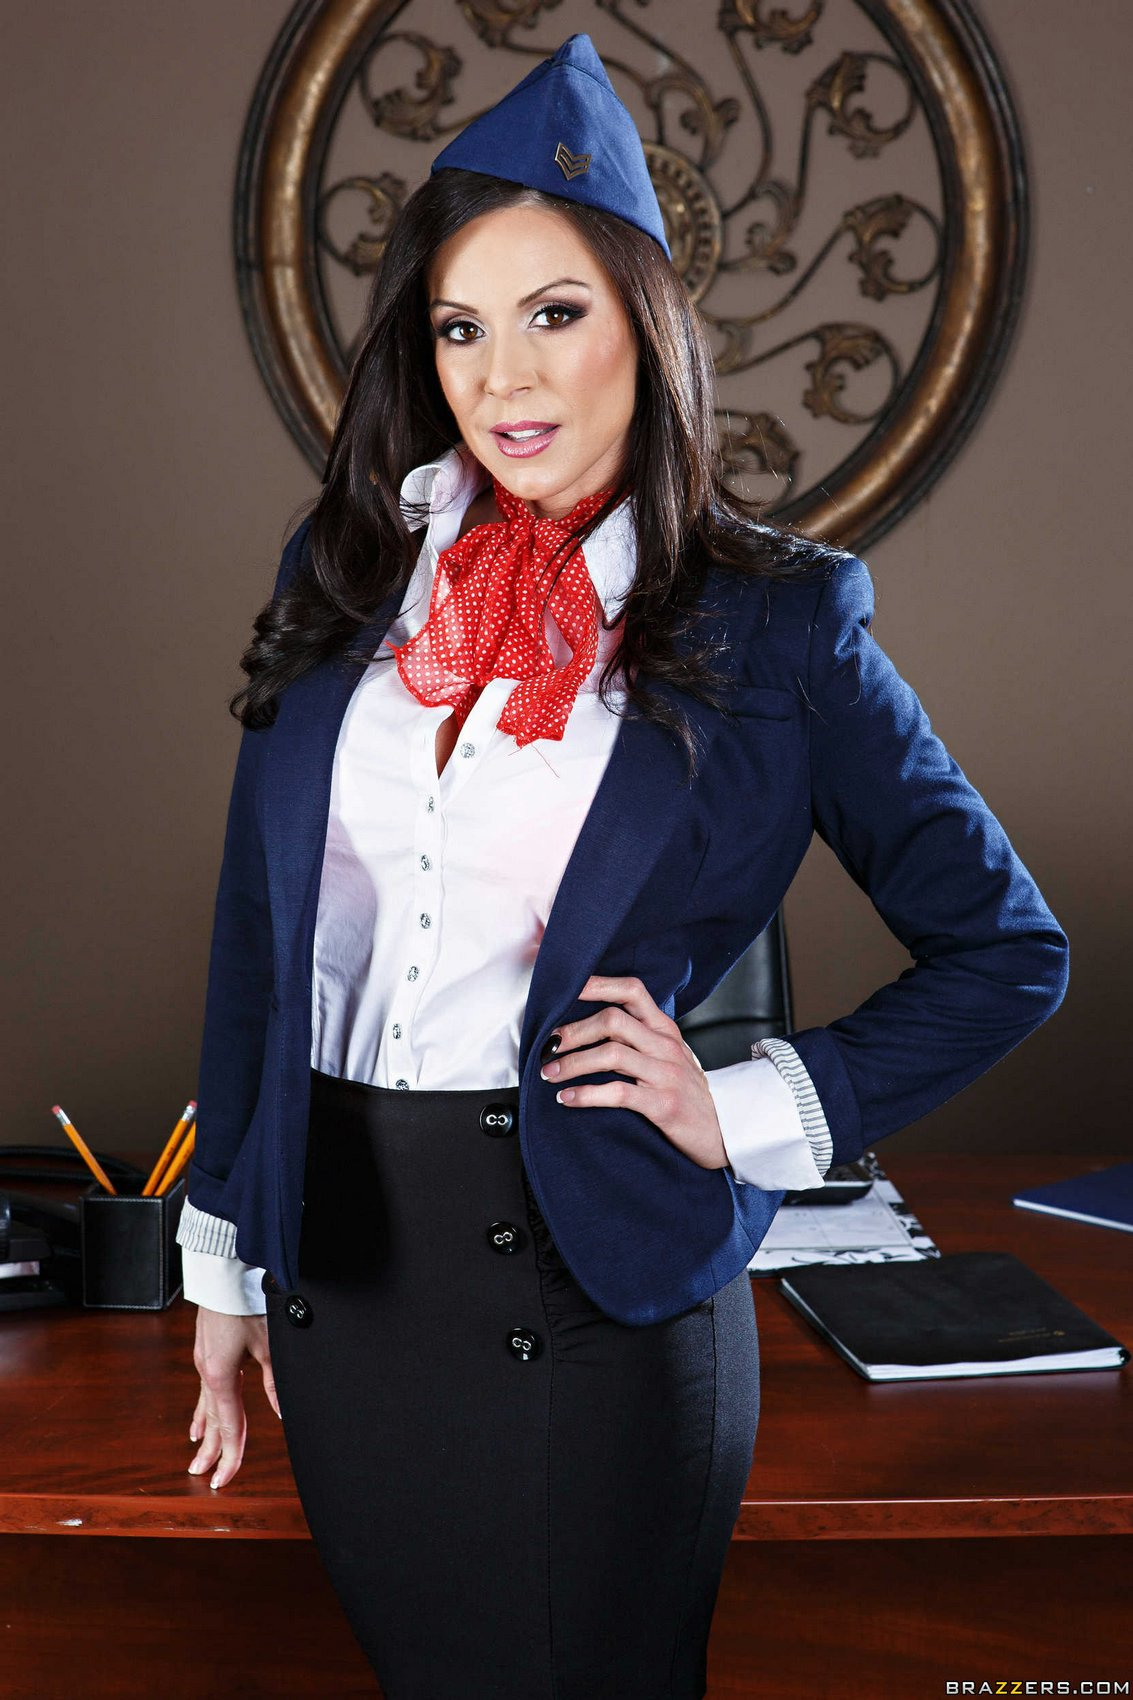 Hot flight attendant Kendra Lust stripping in the office ...